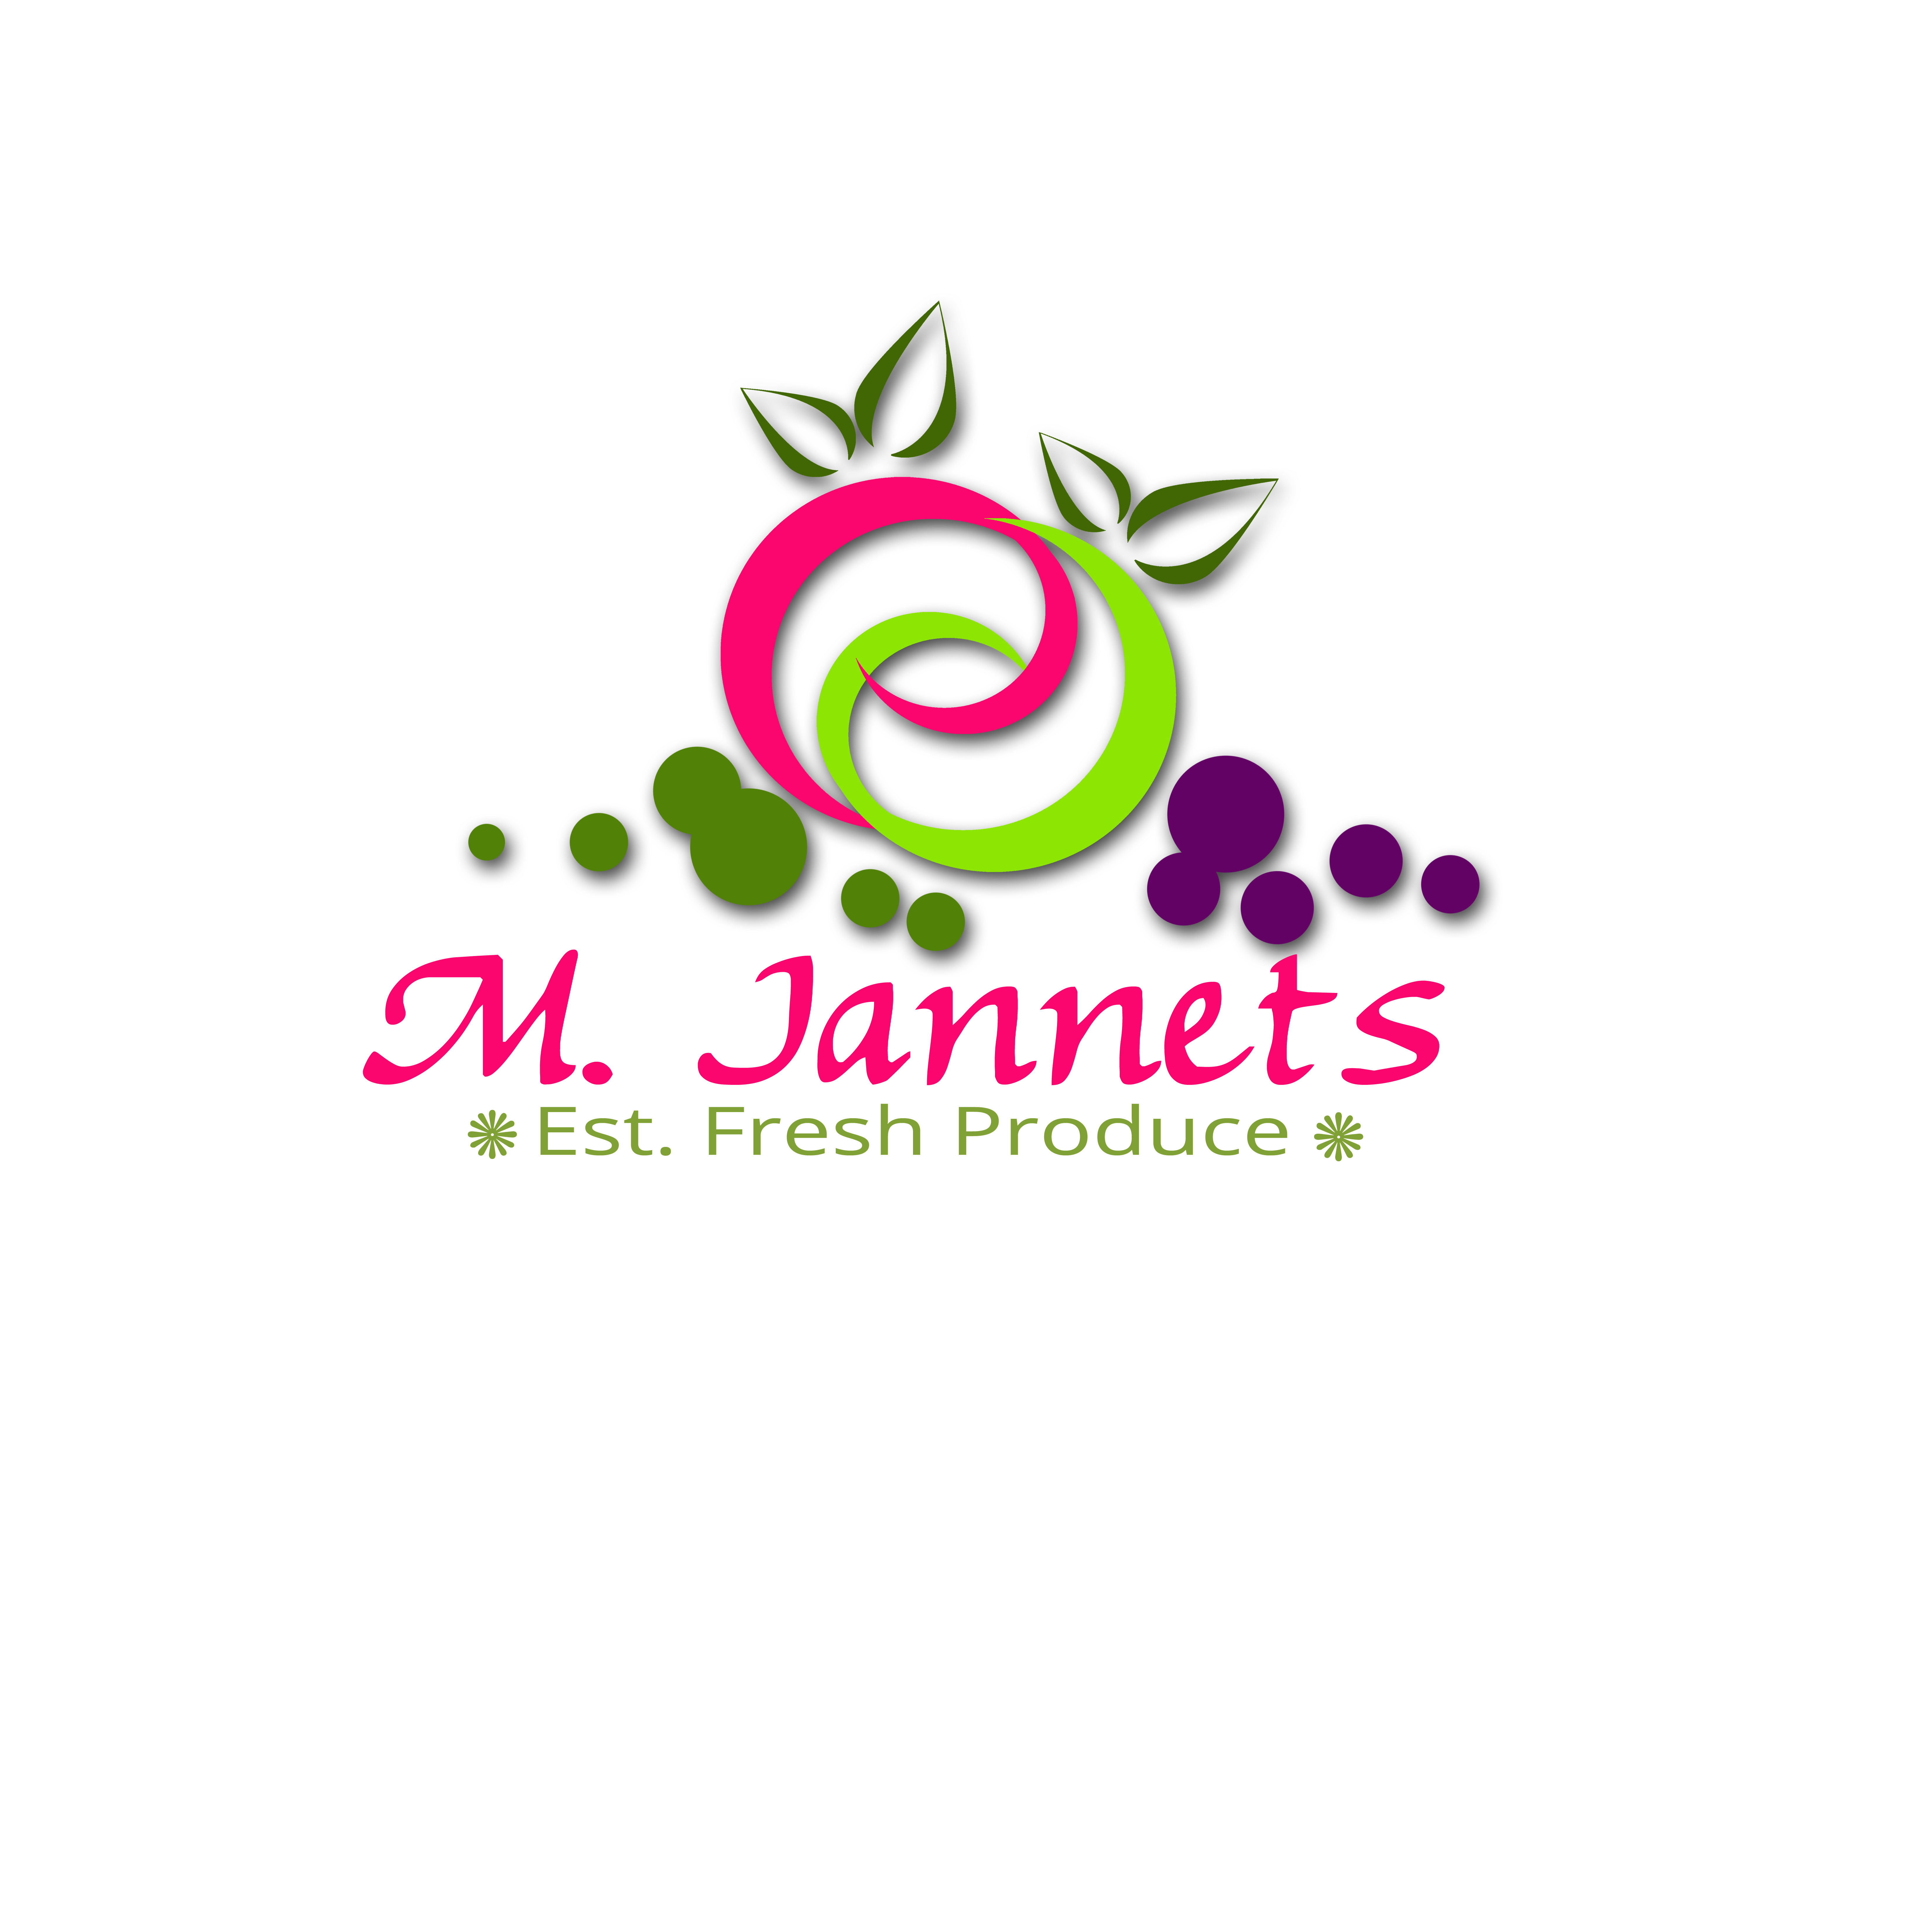 Logo Design by Allan Esclamado - Entry No. 23 in the Logo Design Contest Inspiring Logo Design for M. Jannets.